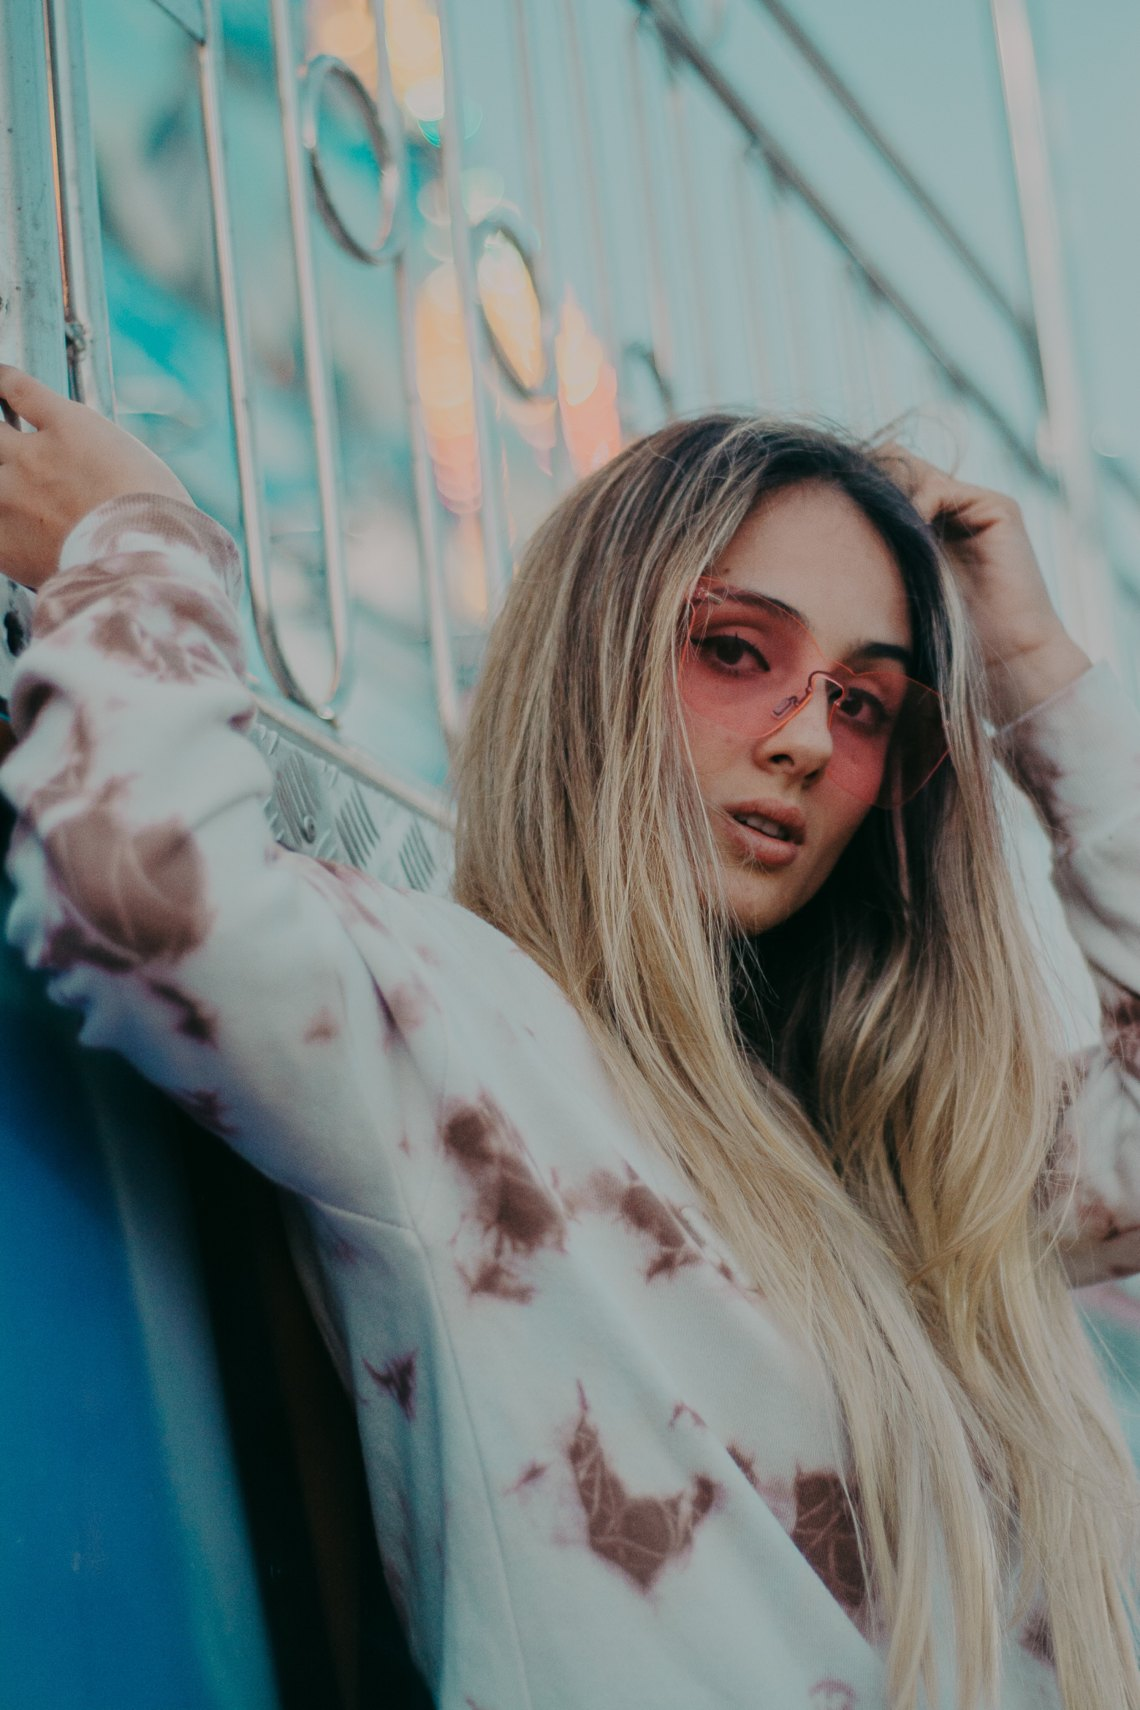 girl in a sweatshirt and sunglasses